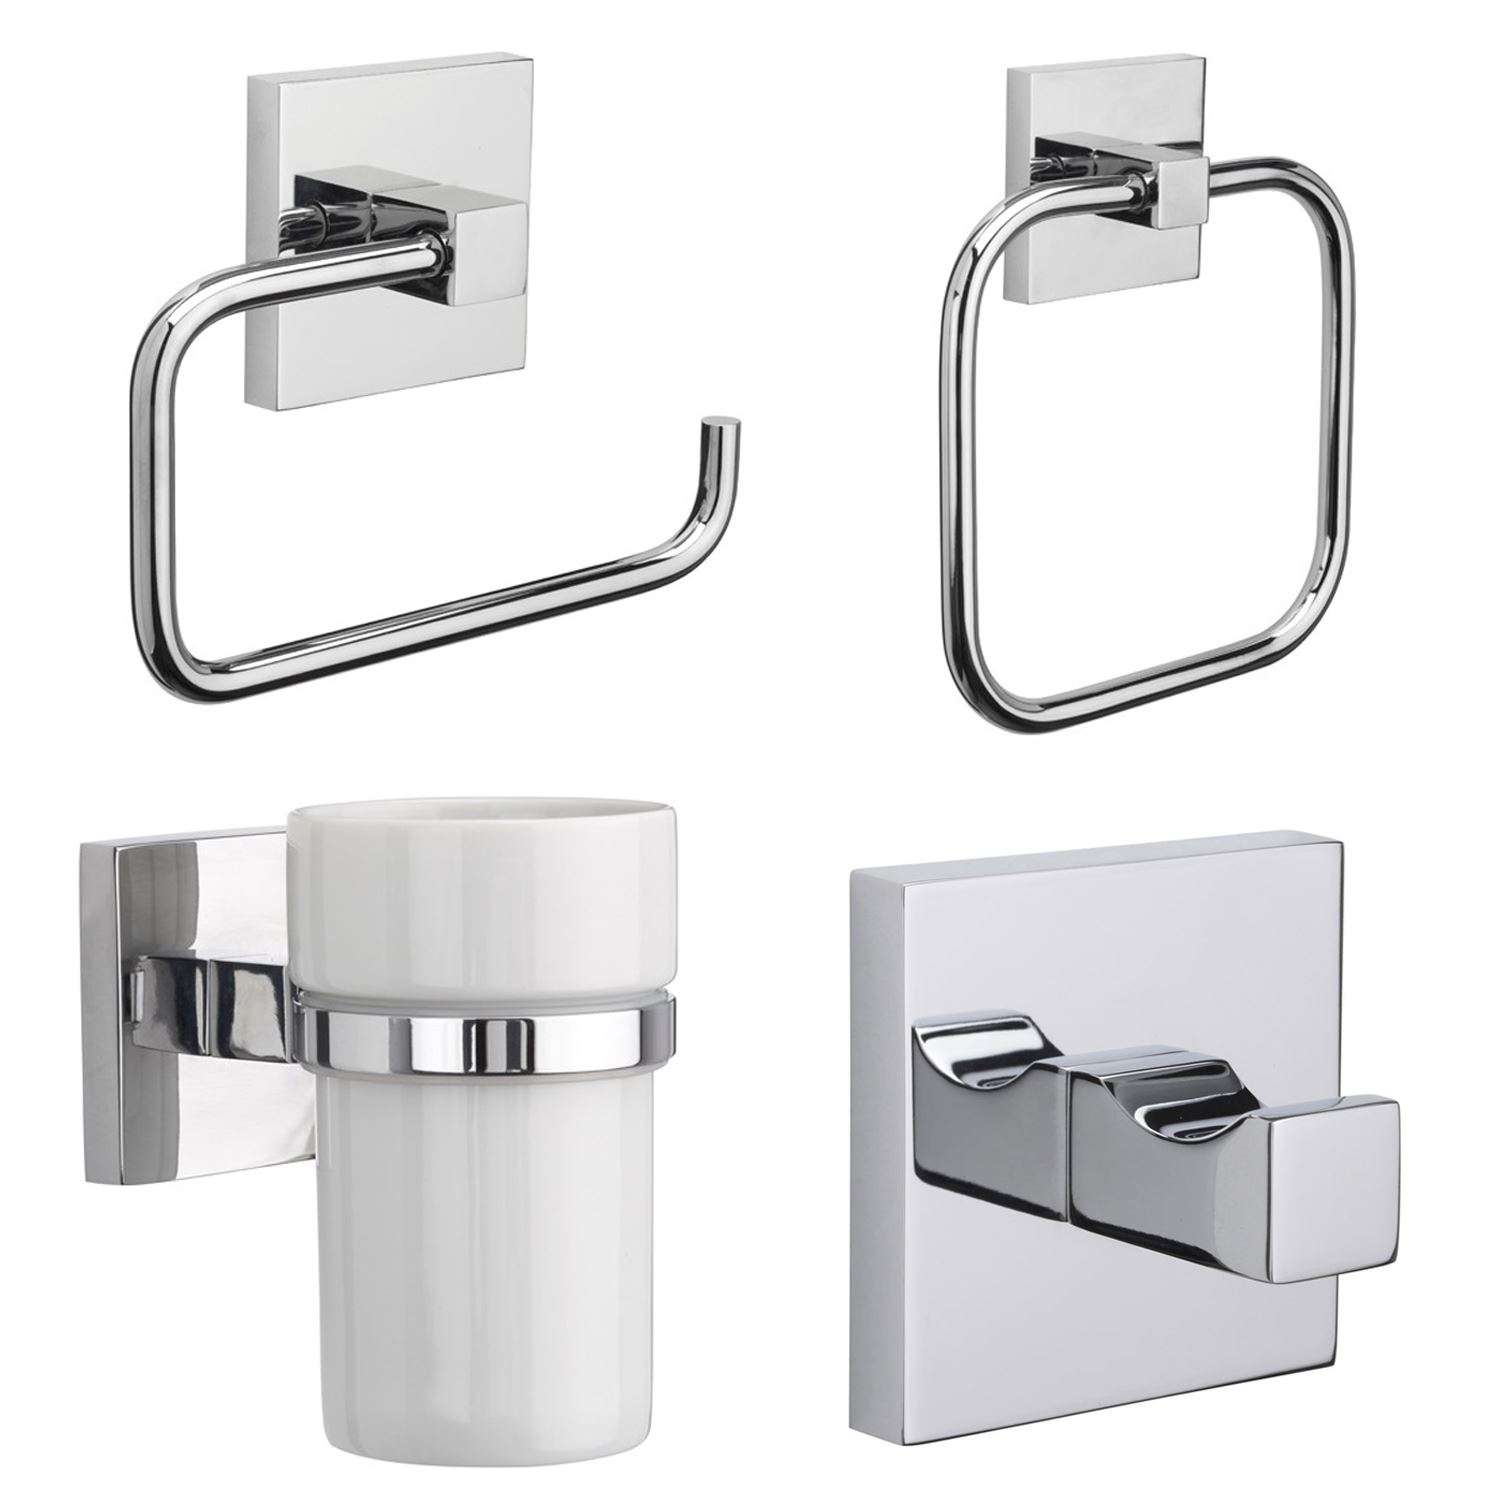 Croydex Brompton Flexi-Fix Chrome Wall Mounted X Plate Bathroom ...